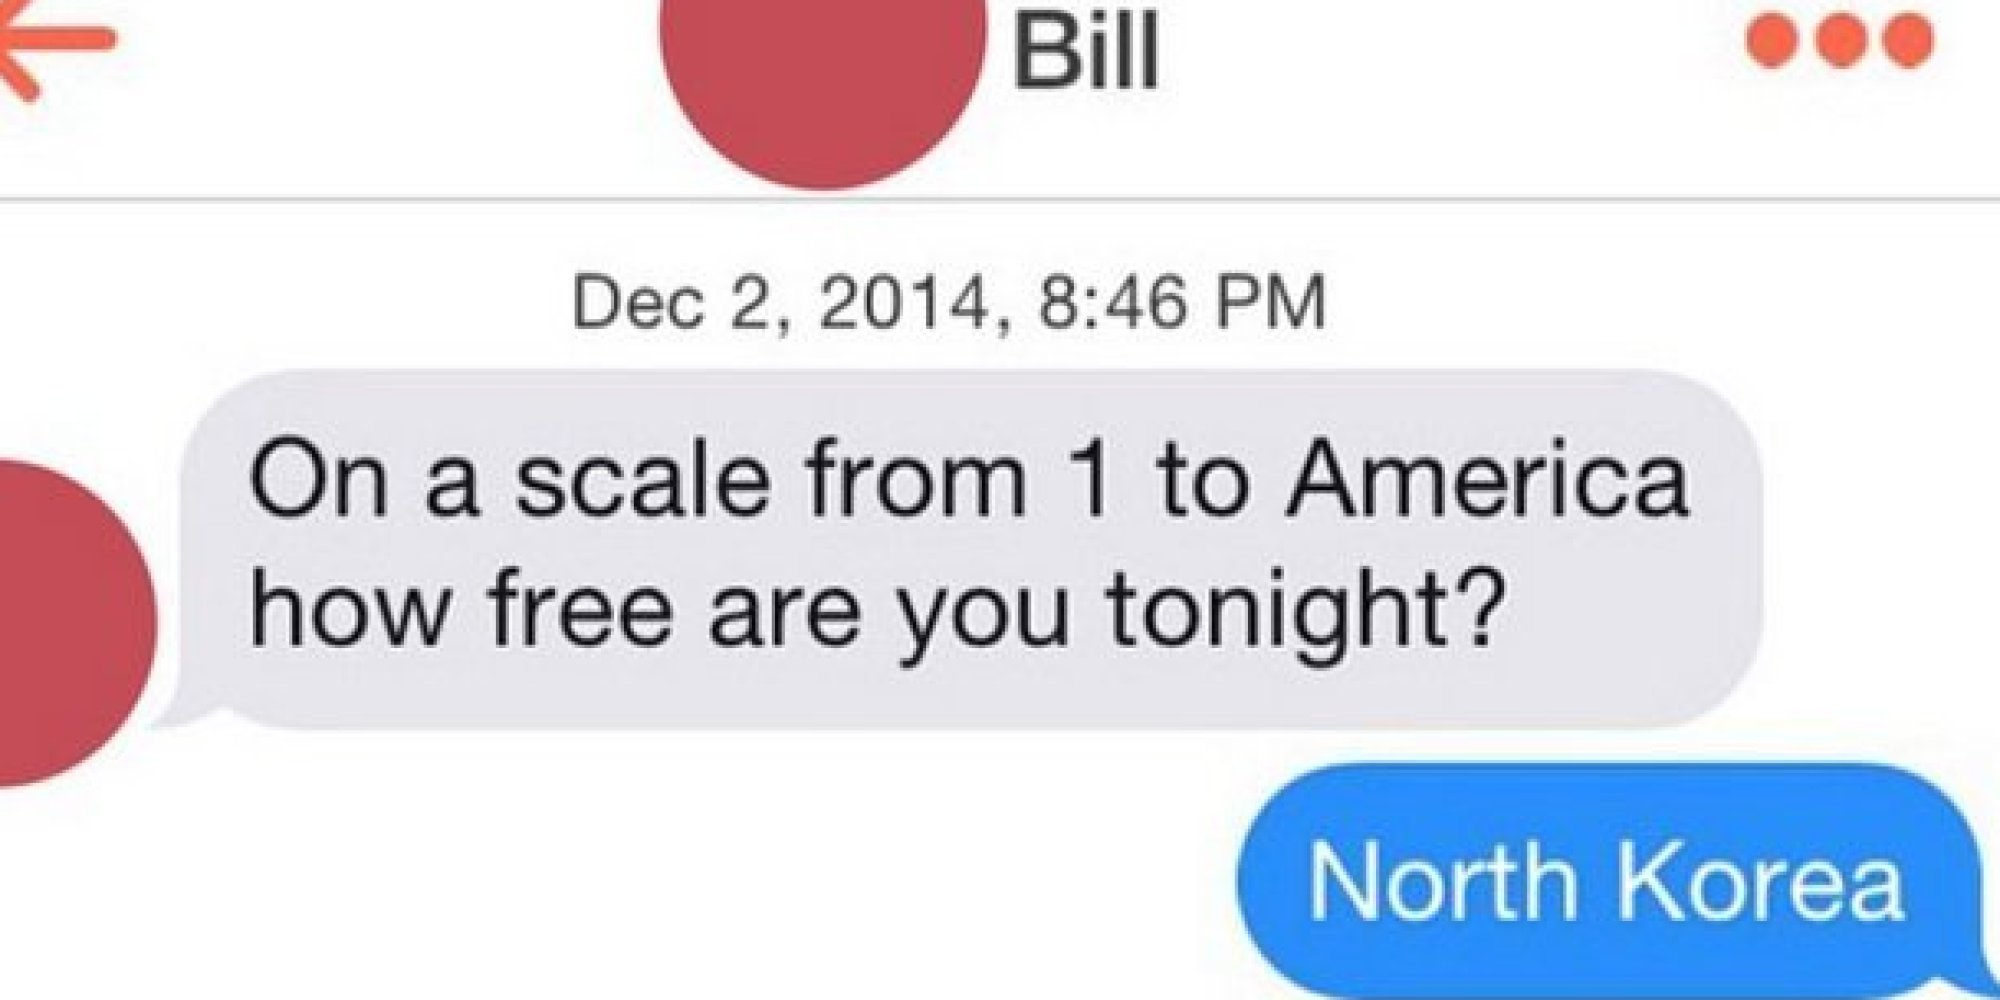 Internet dating tinder